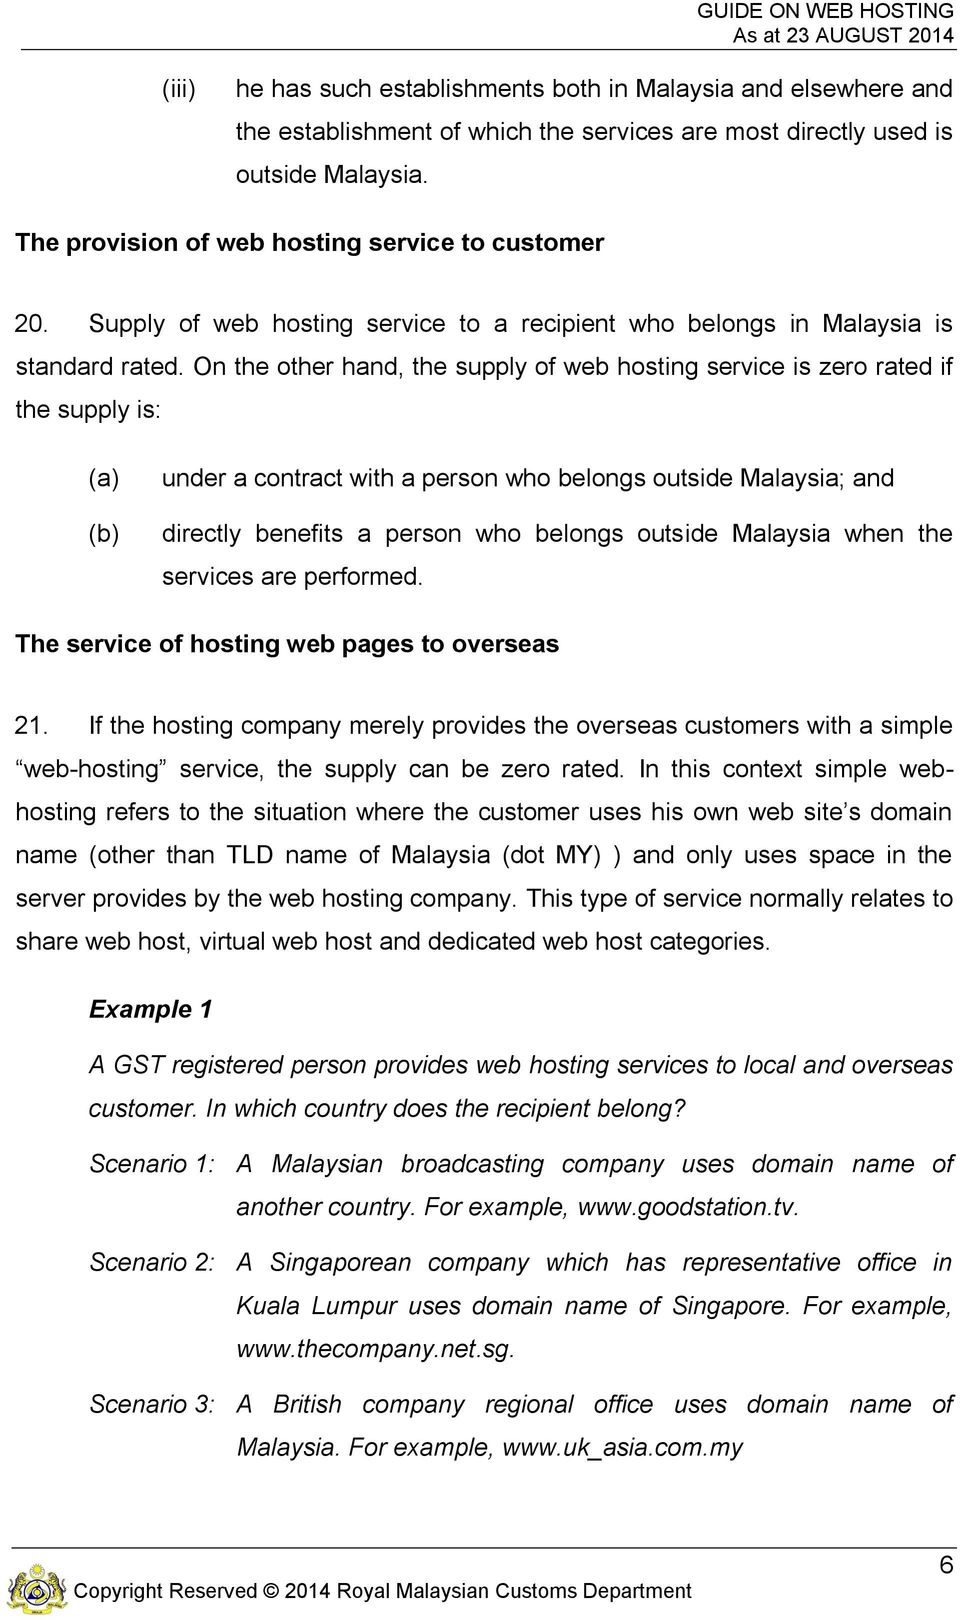 On the other hand, the supply of web hosting service is zero rated if the supply is: (a) (b) under a contract with a person who belongs outside Malaysia; and directly benefits a person who belongs